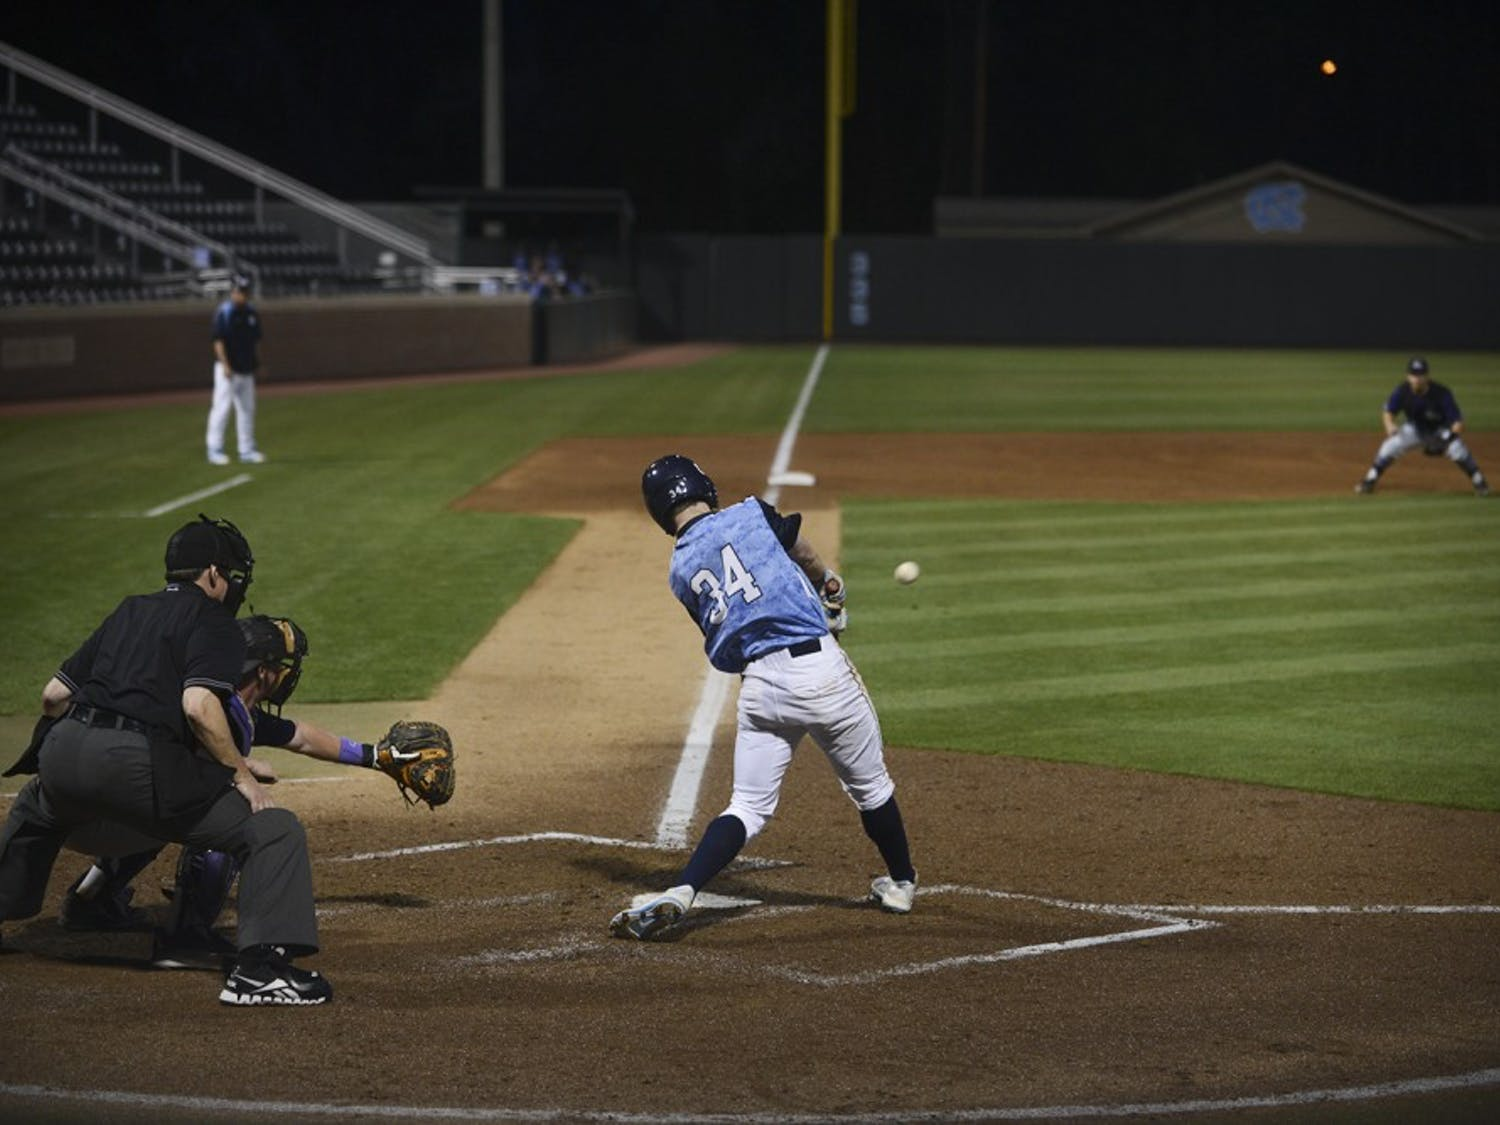 UNC freshman Brian Miller (34) rips a solid line drive to left field in Tuesday's game against High Point.